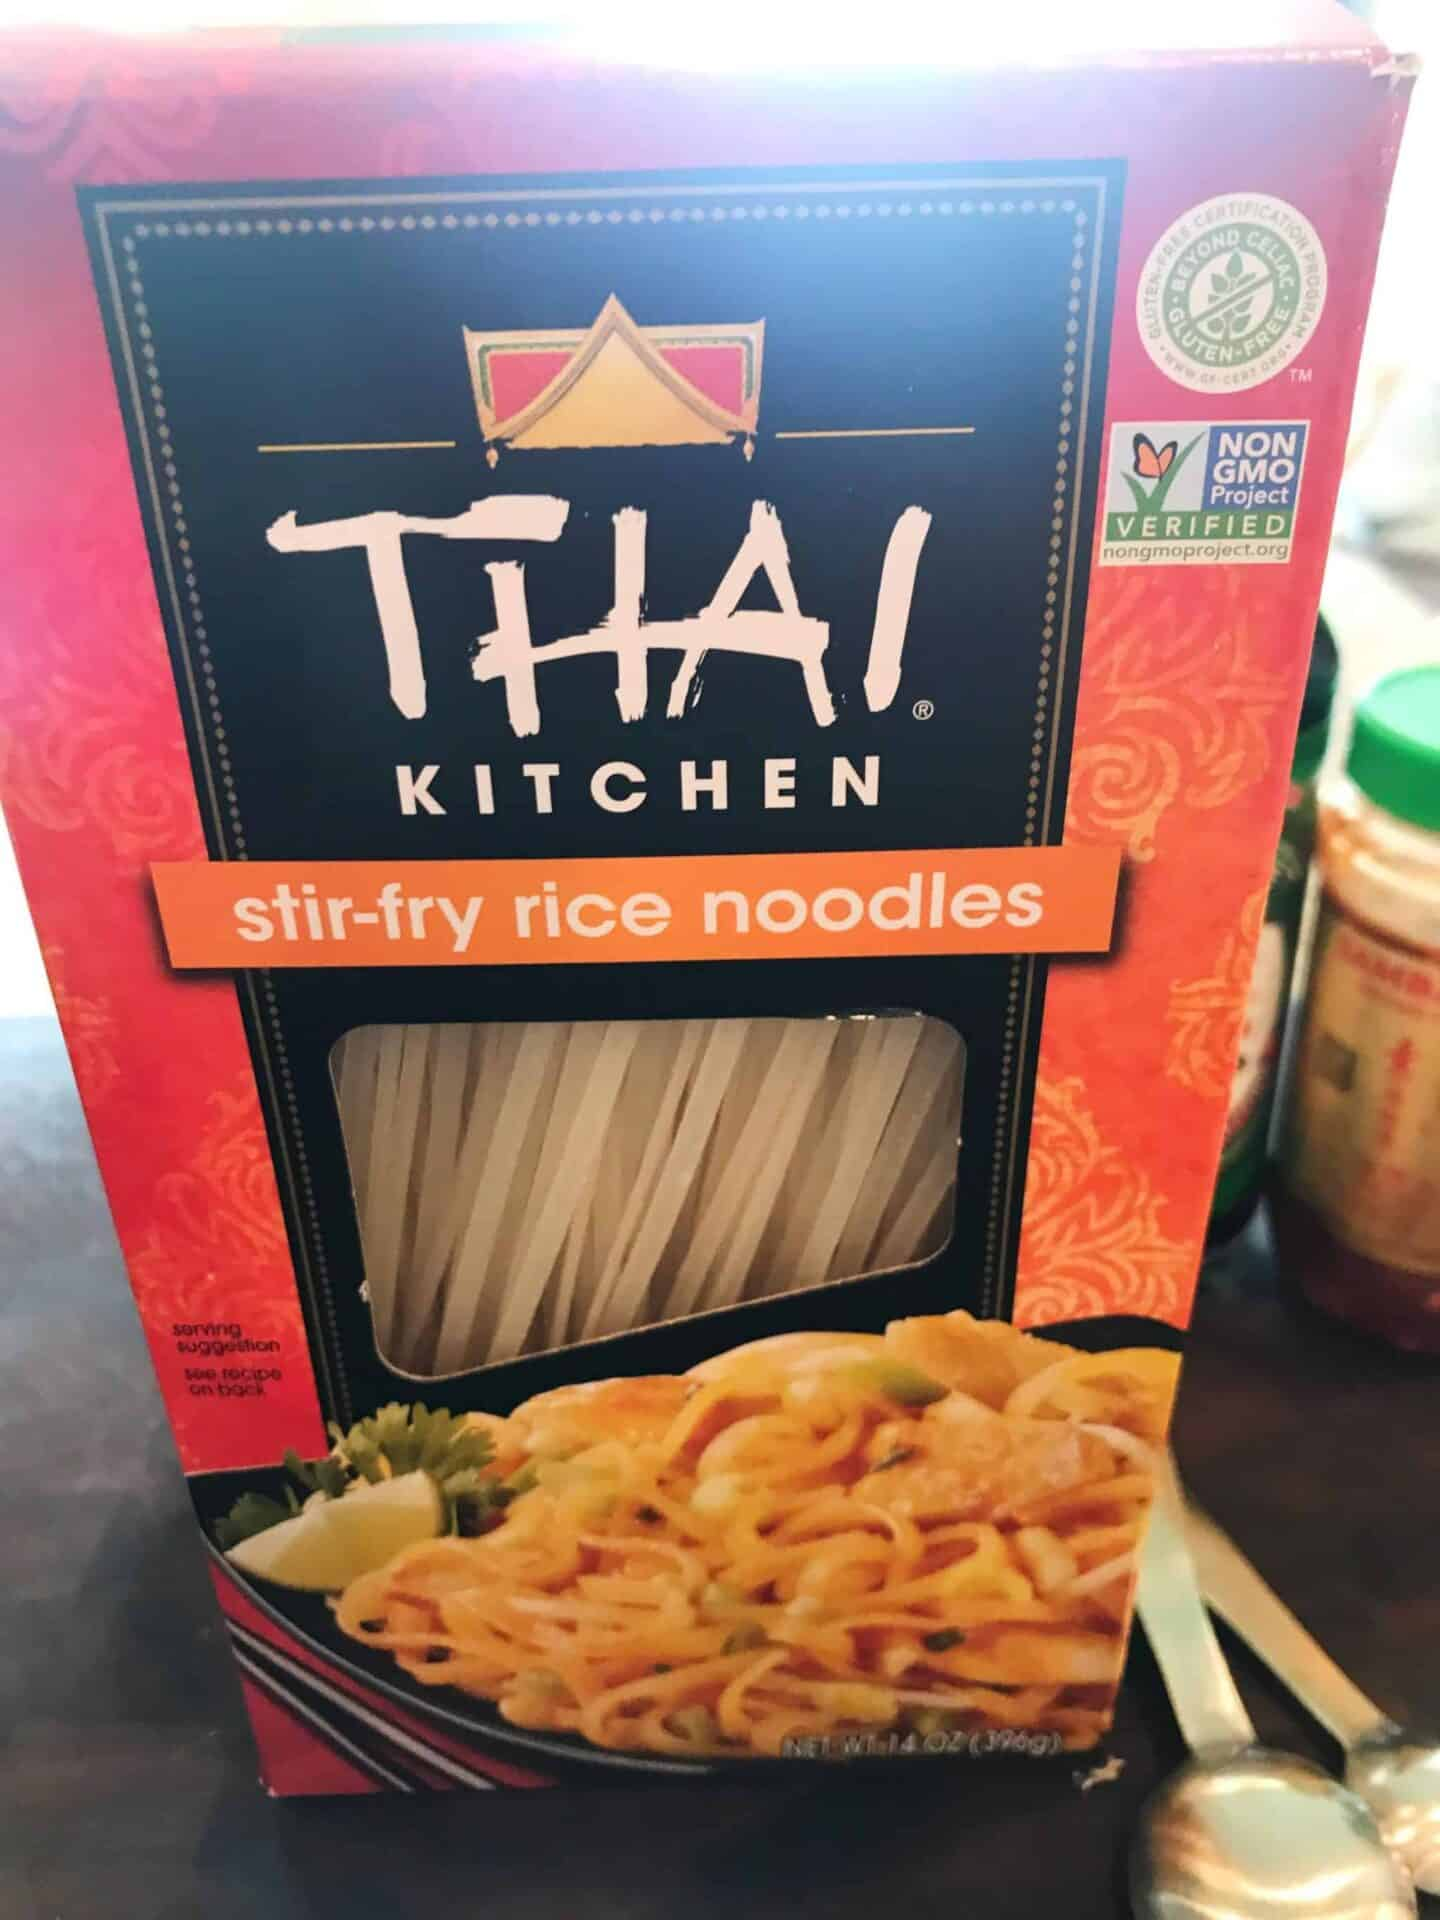 Thai kitchen gluten free stir fry noodles